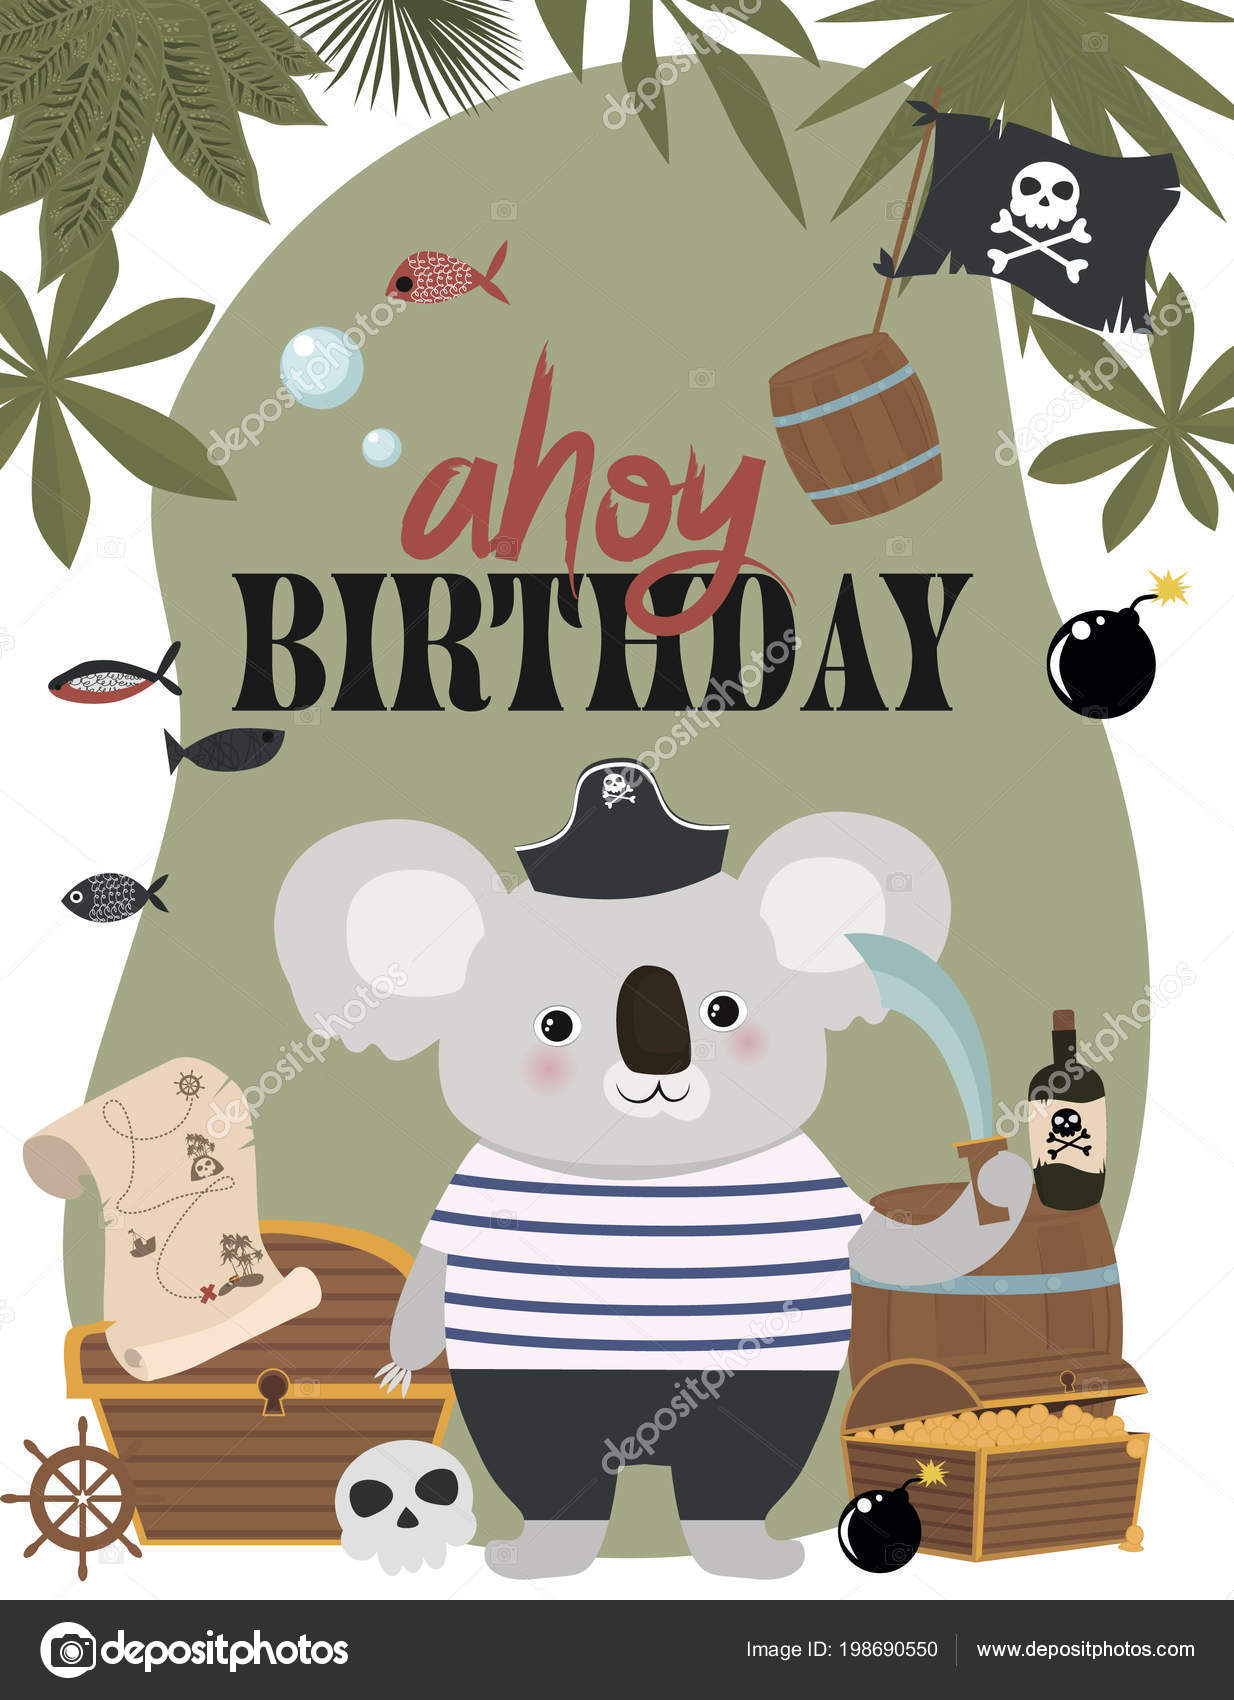 Pirate Birthday Invitation Card Cartoon Style Editable